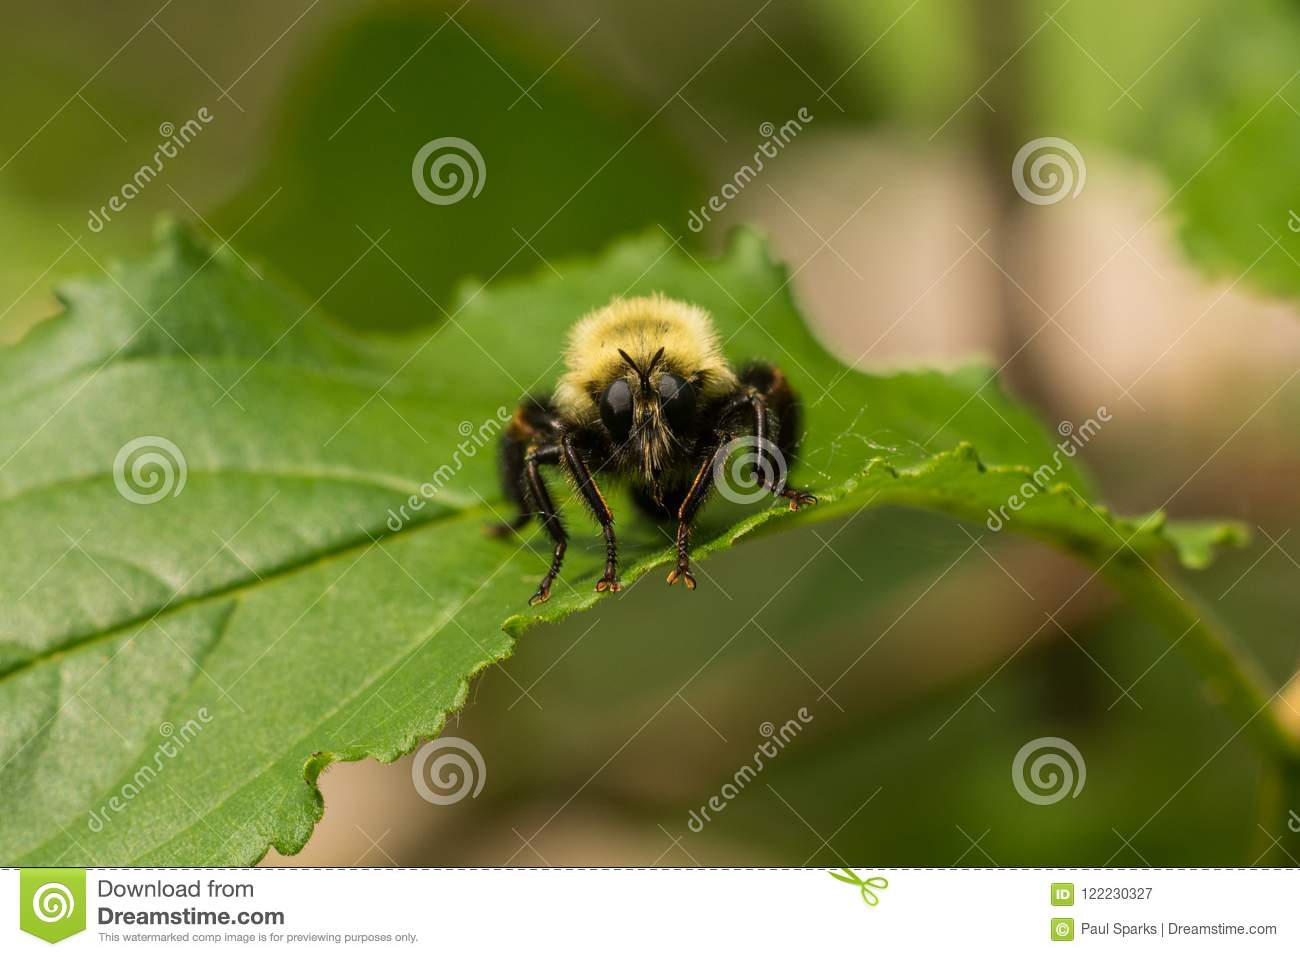 Robberfly, Laphria-thoracica